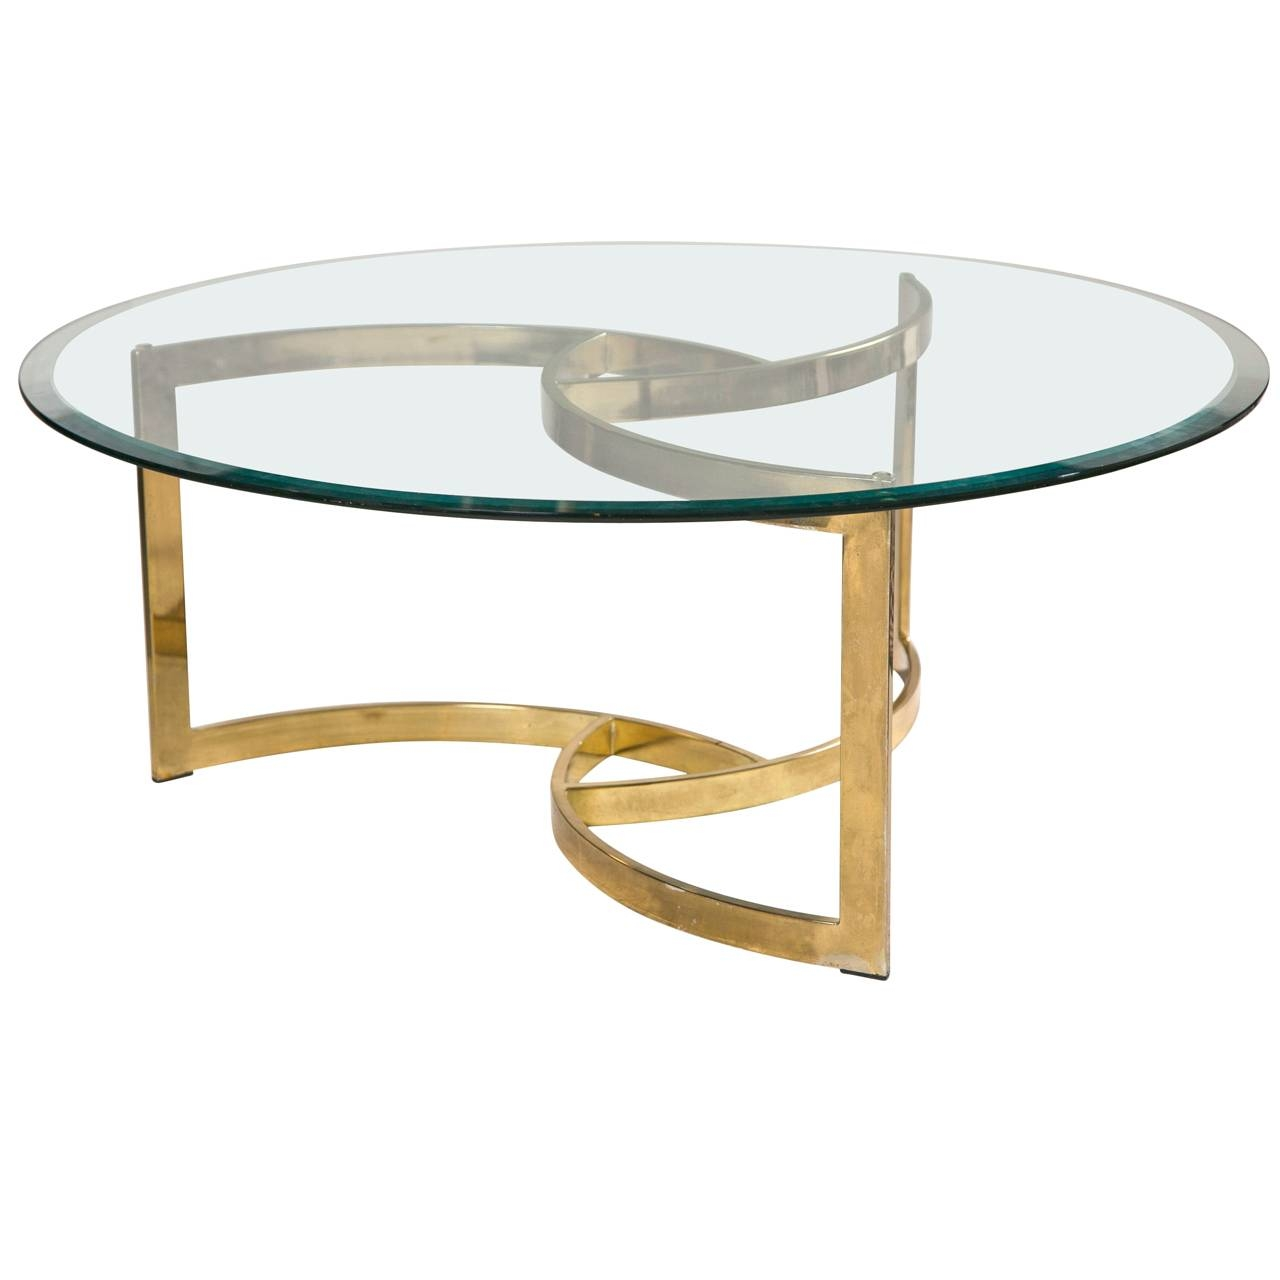 Stunning Round Metal And Glass Coffee Table With Antique And throughout Vintage Glass Top Coffee Tables (Image 18 of 30)